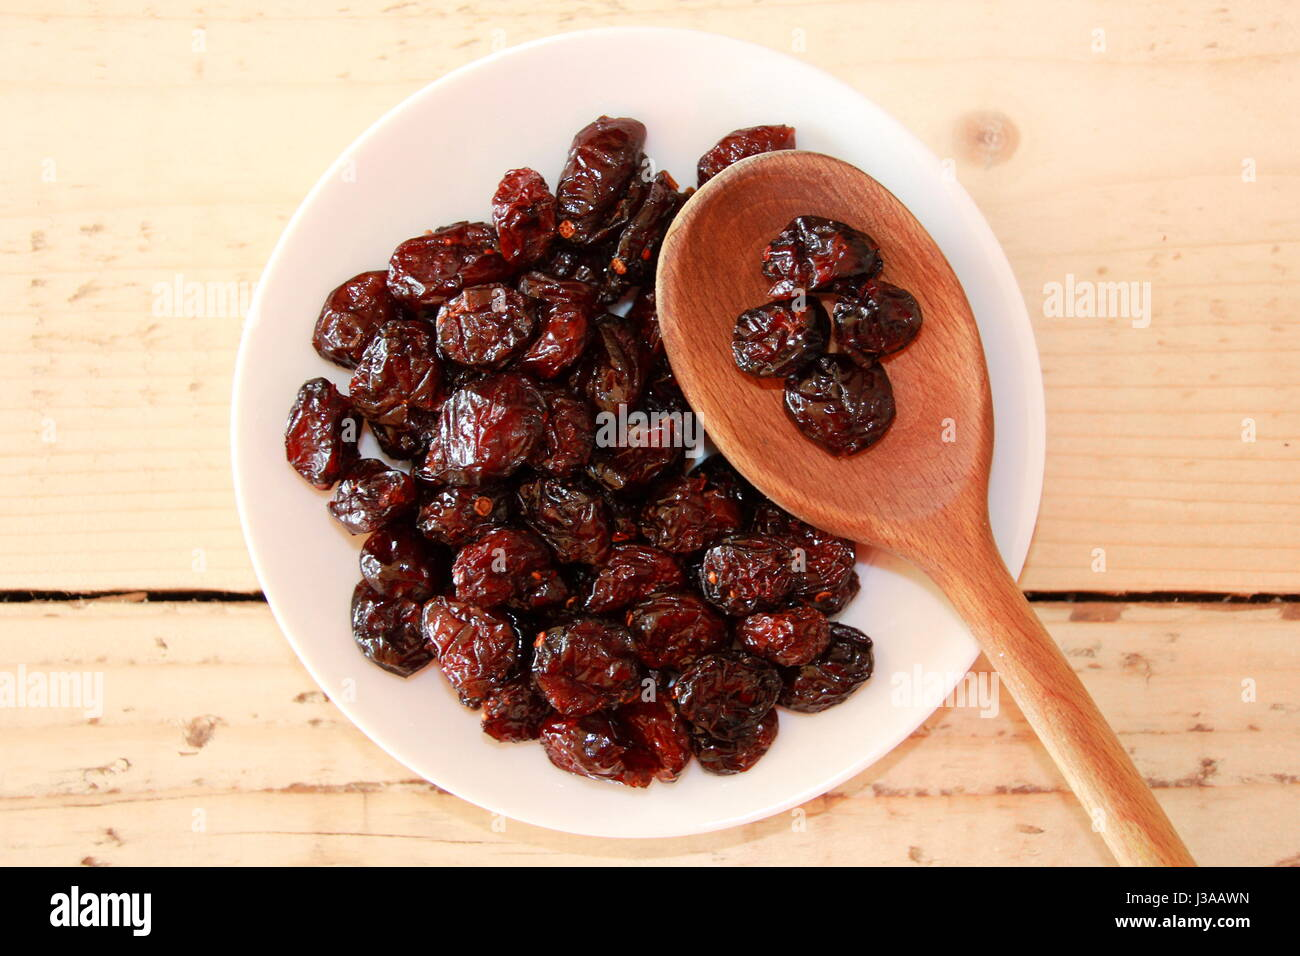 Dried fruits and nuts - Stock Image